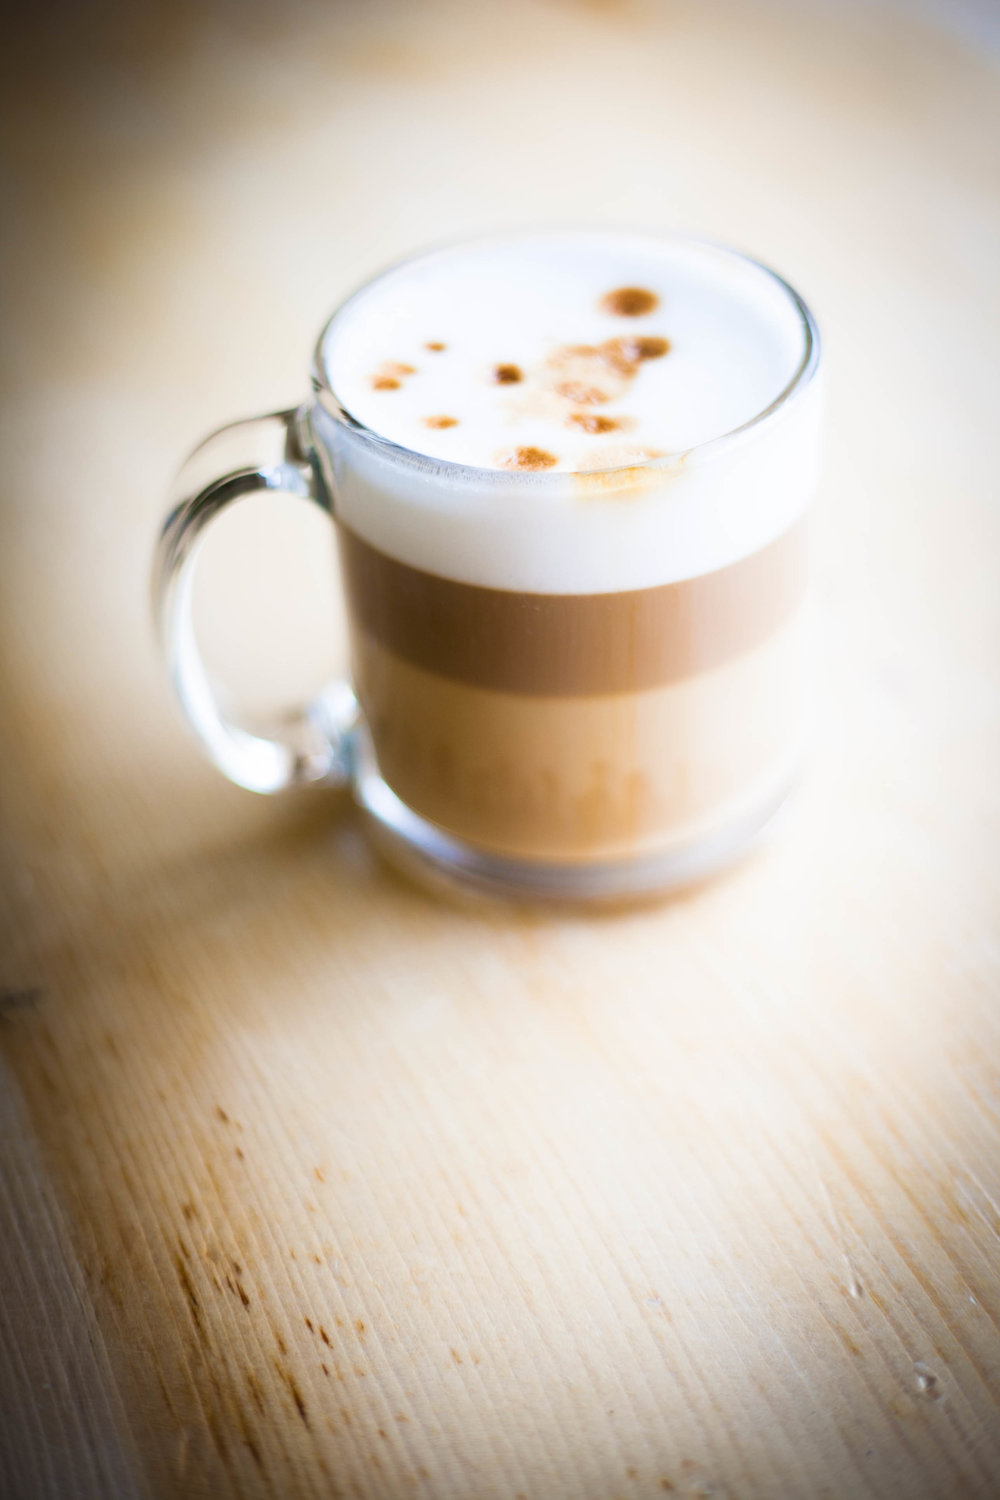 We're famous for our Macchiato around here. Try our James Joyce with a ton of espresso and hint of Irish Cream!